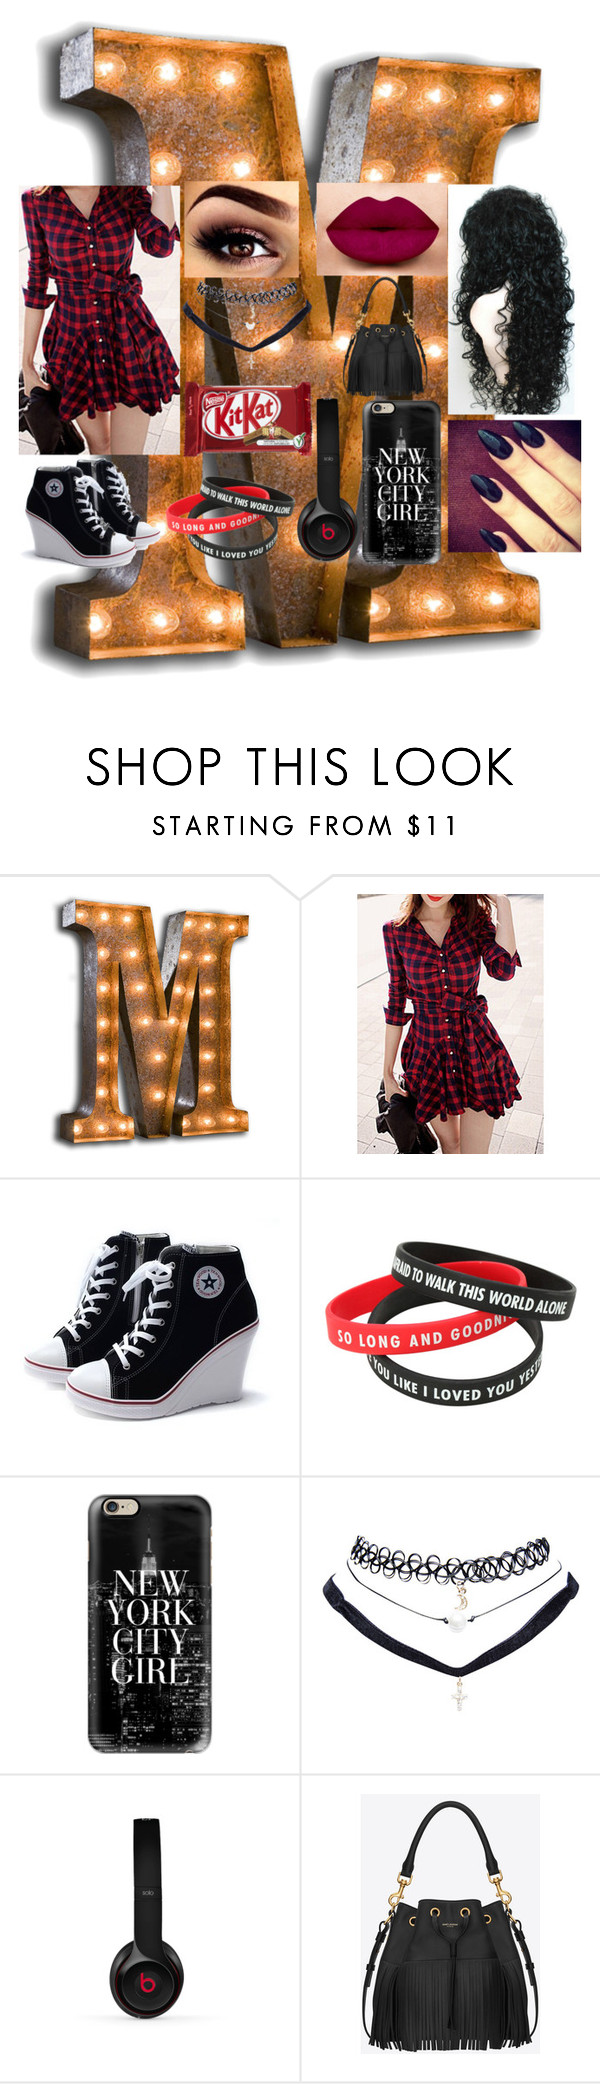 """""""Look#106"""" by allicefaleta ❤ liked on Polyvore featuring Vintage Marquee Lights, Casetify, Wet Seal, Beats by Dr. Dre and Yves Saint Laurent"""